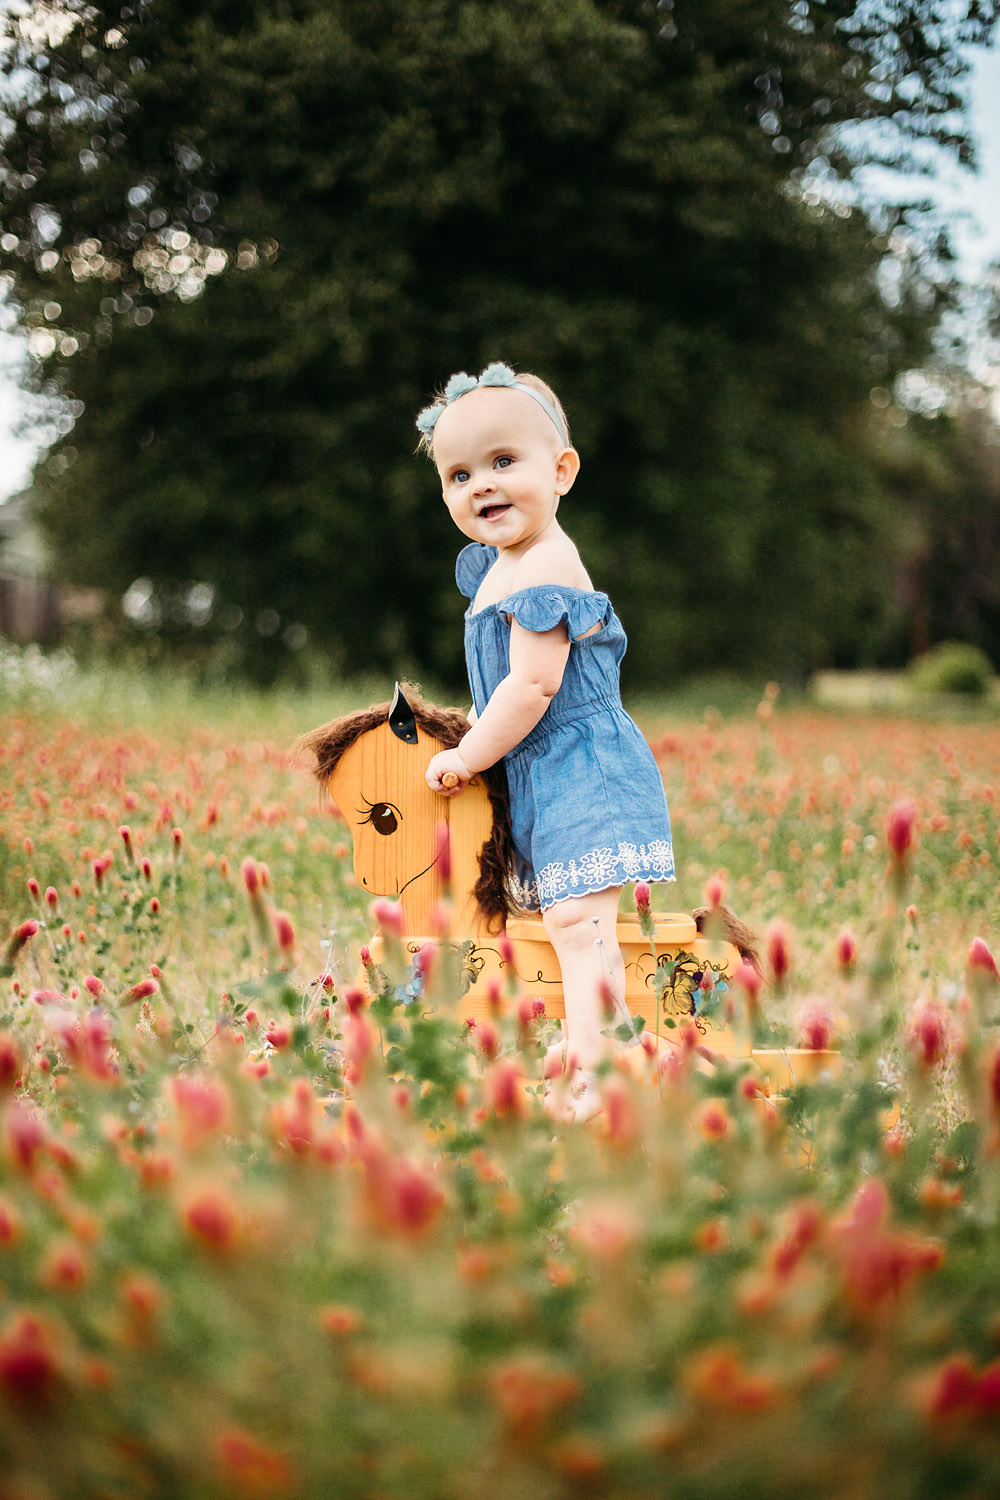 Little girl on a rocking horse in flowers - Redding CA Family Photos